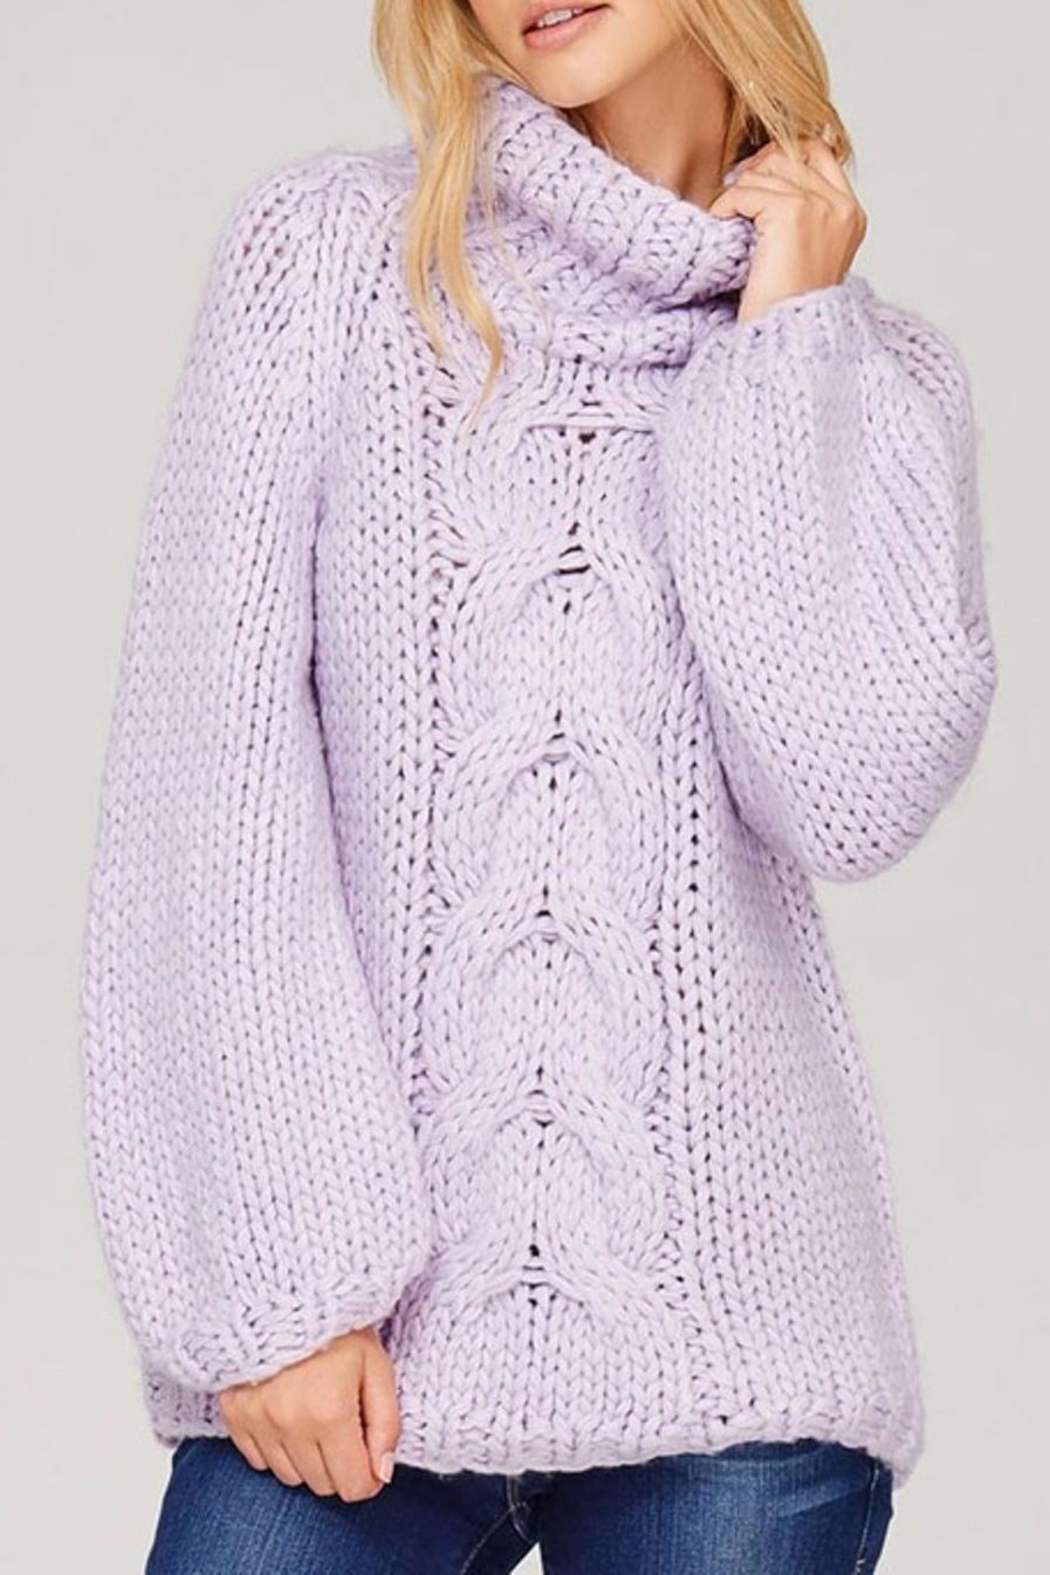 Sweet Journey Chunky Knit Sweater - Main Image